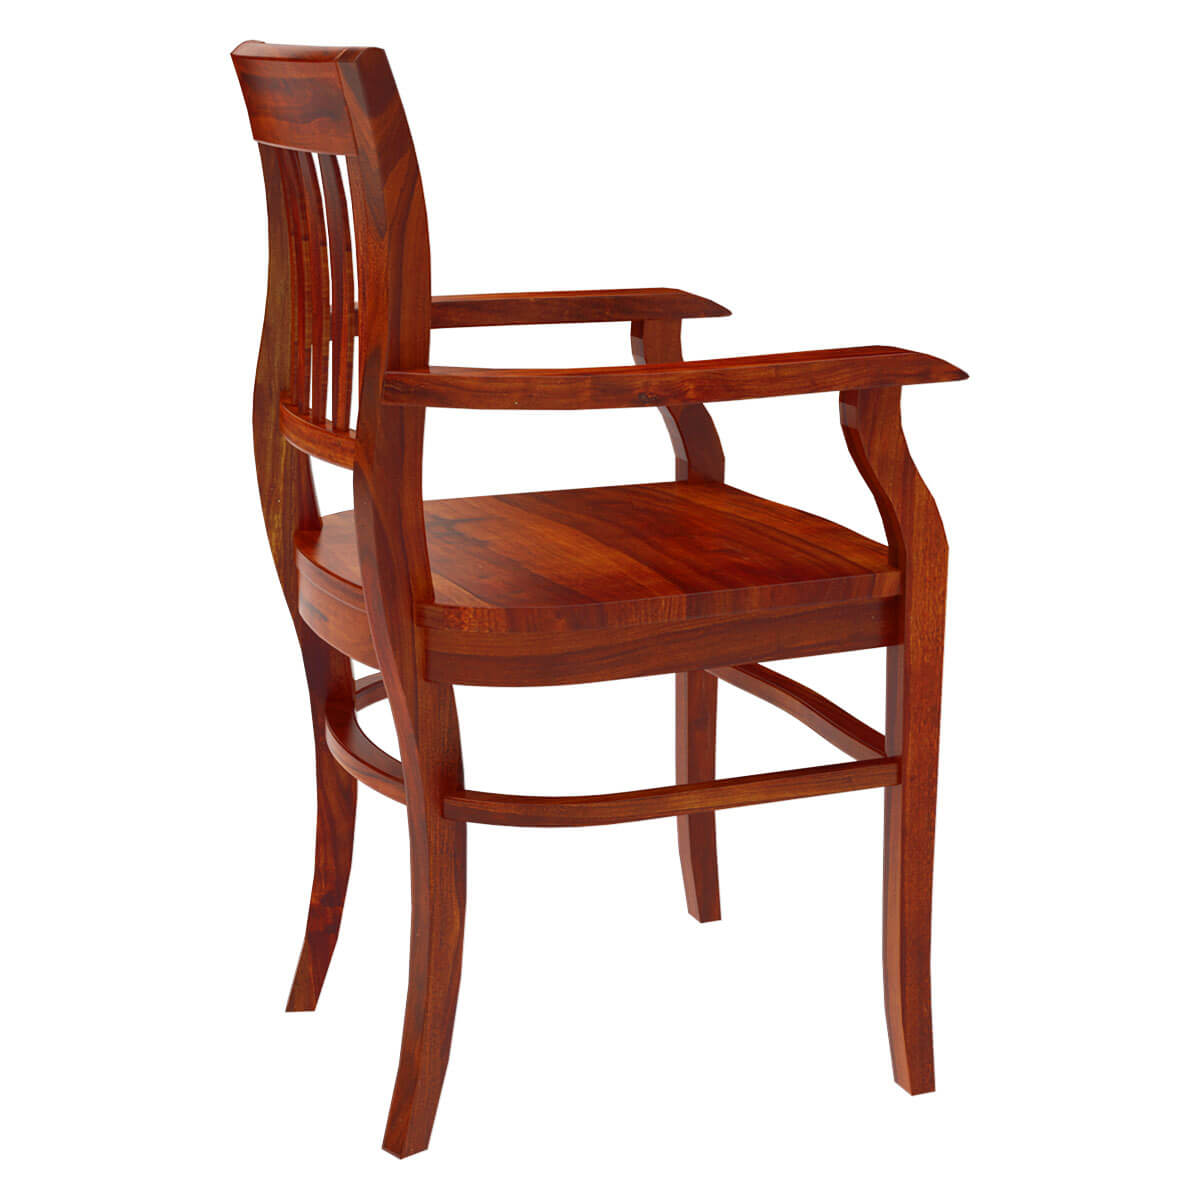 Unfinished Wood Dining Chairs Siena Rustic Solid Wood Arm Dining Chair